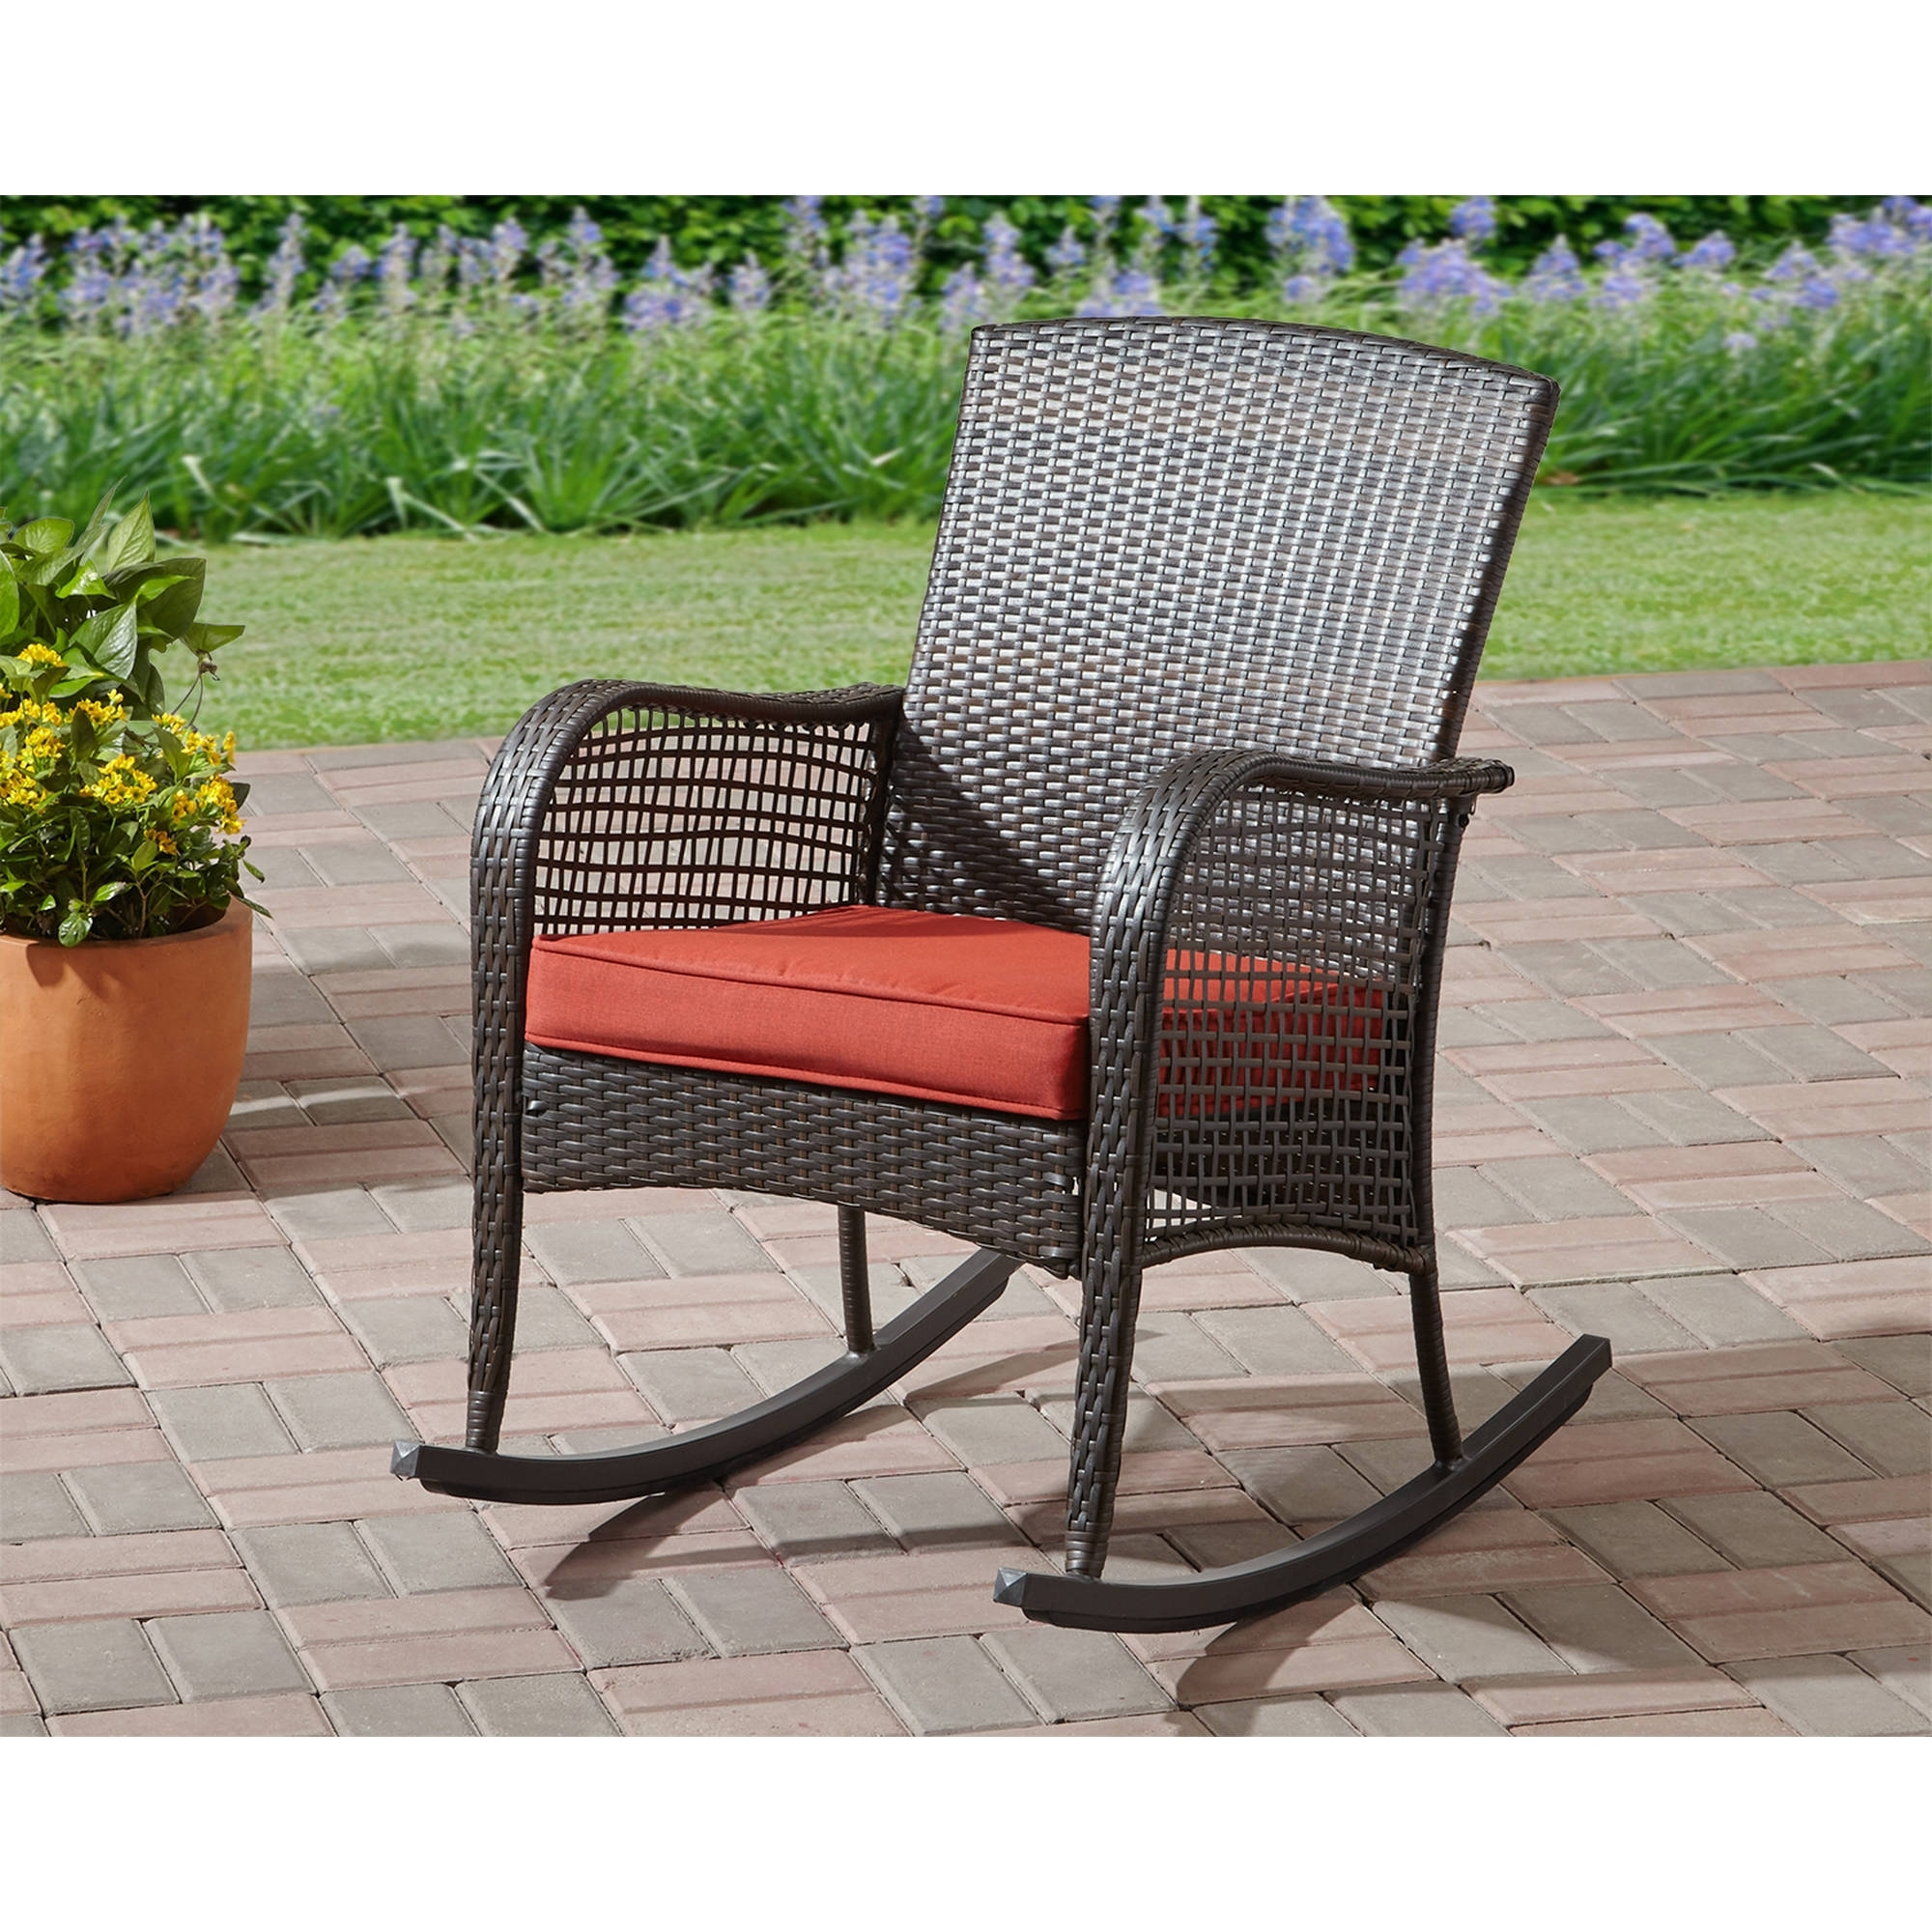 Most Popular Rocking Chair Cushion Seat Wicker Steel Frame Outdoor Patio Deck With Regard To Patio Rocking Chairs With Cushions (View 5 of 15)